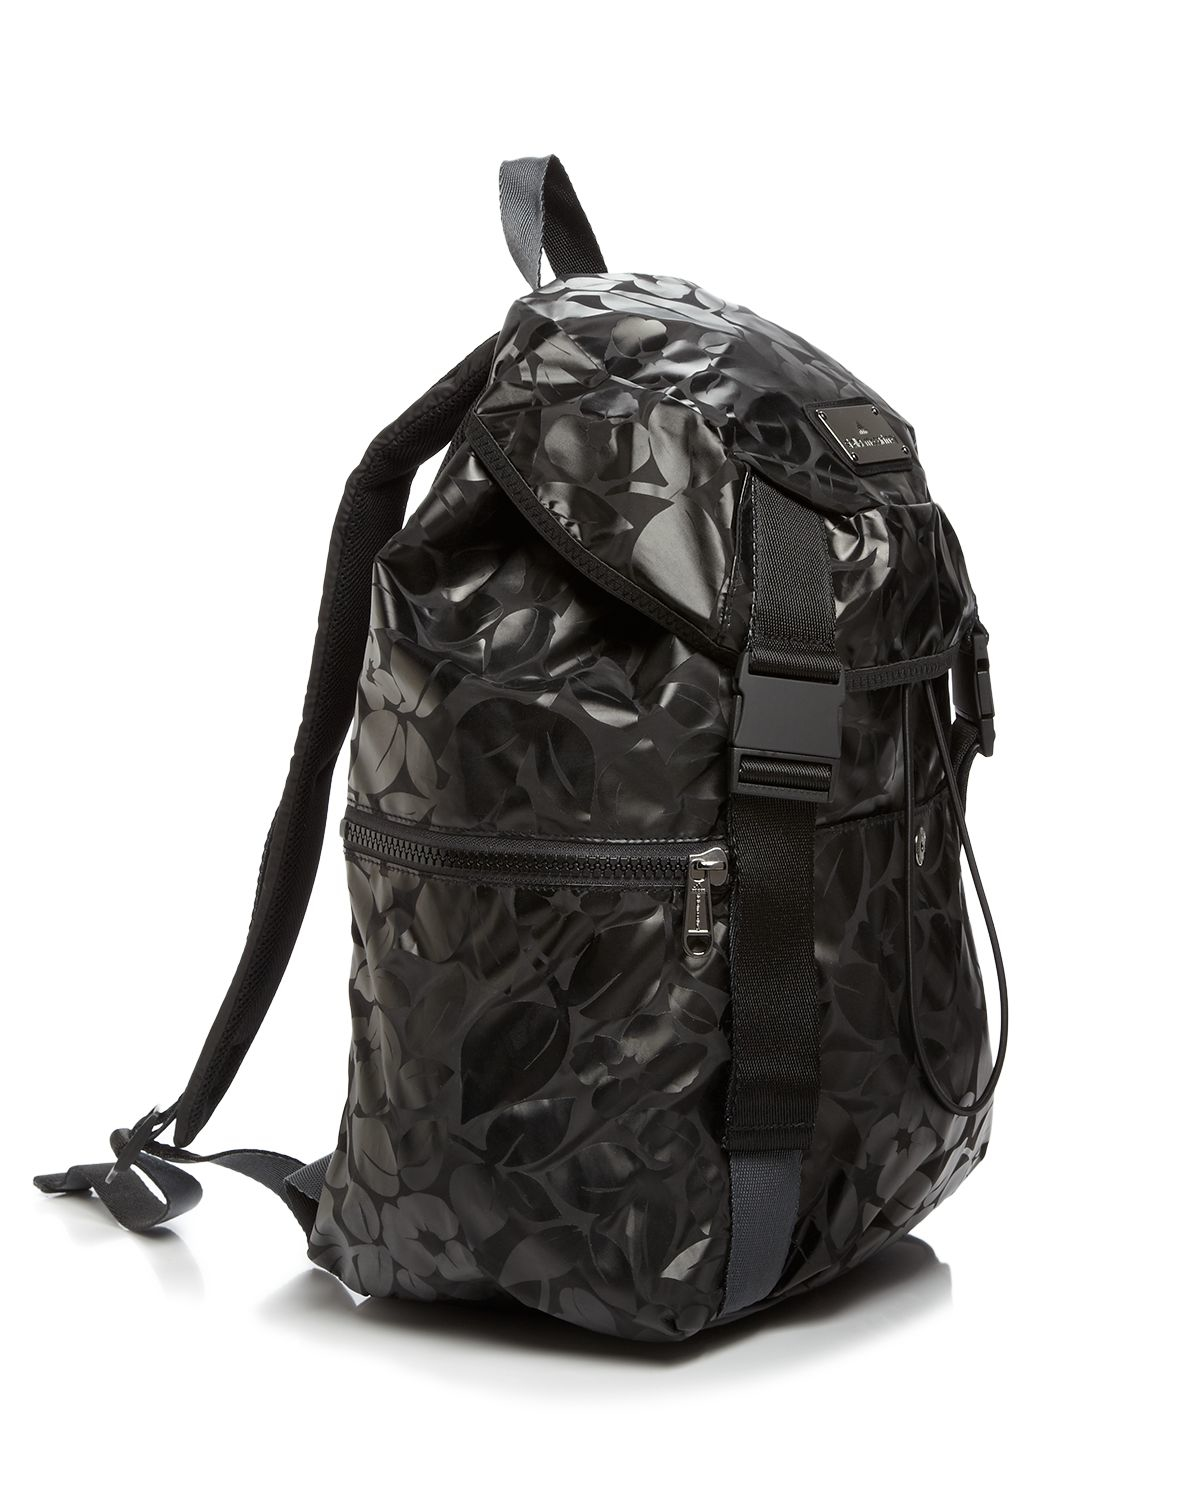 07dcdcbce2f1 Lyst - adidas By Stella McCartney Backpack - Metallic in Black